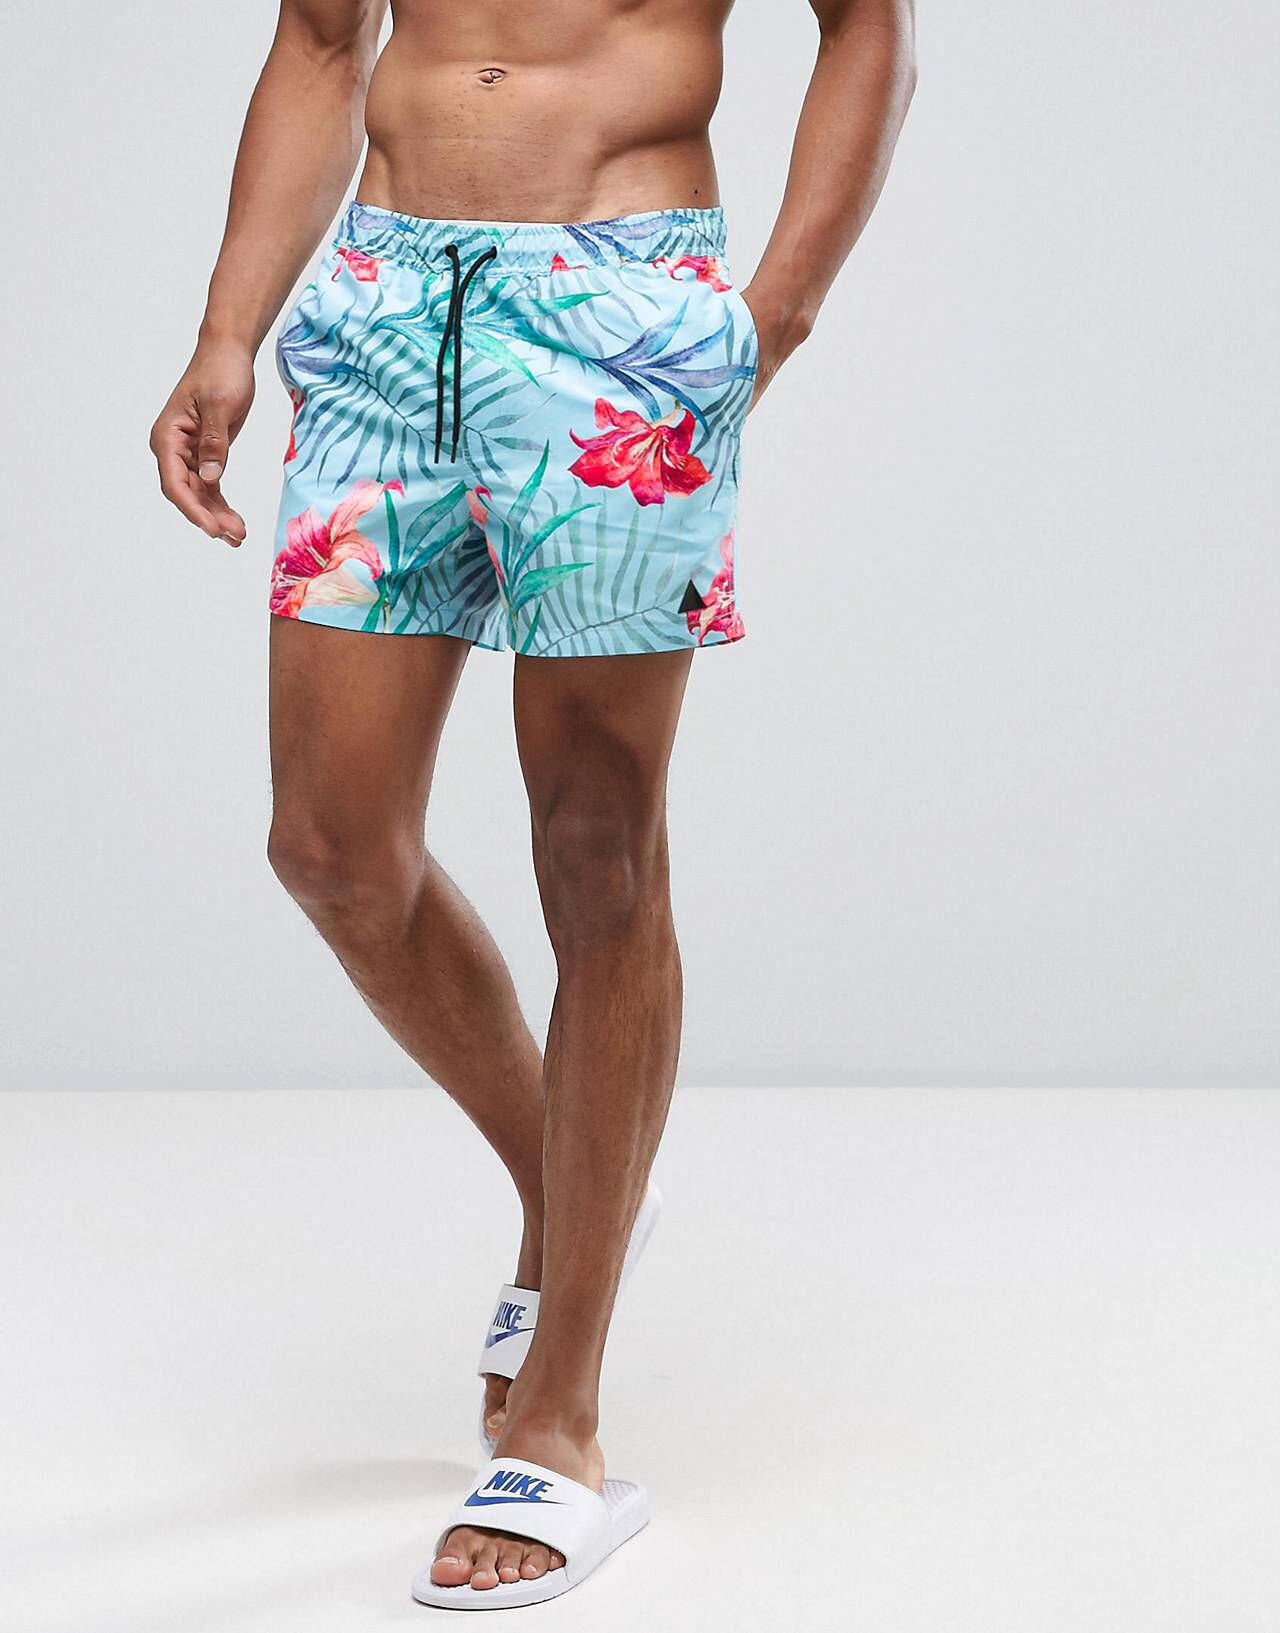 078e6aebf Swim Shorts With Floral Print With Triangle Logo In Short Length ...